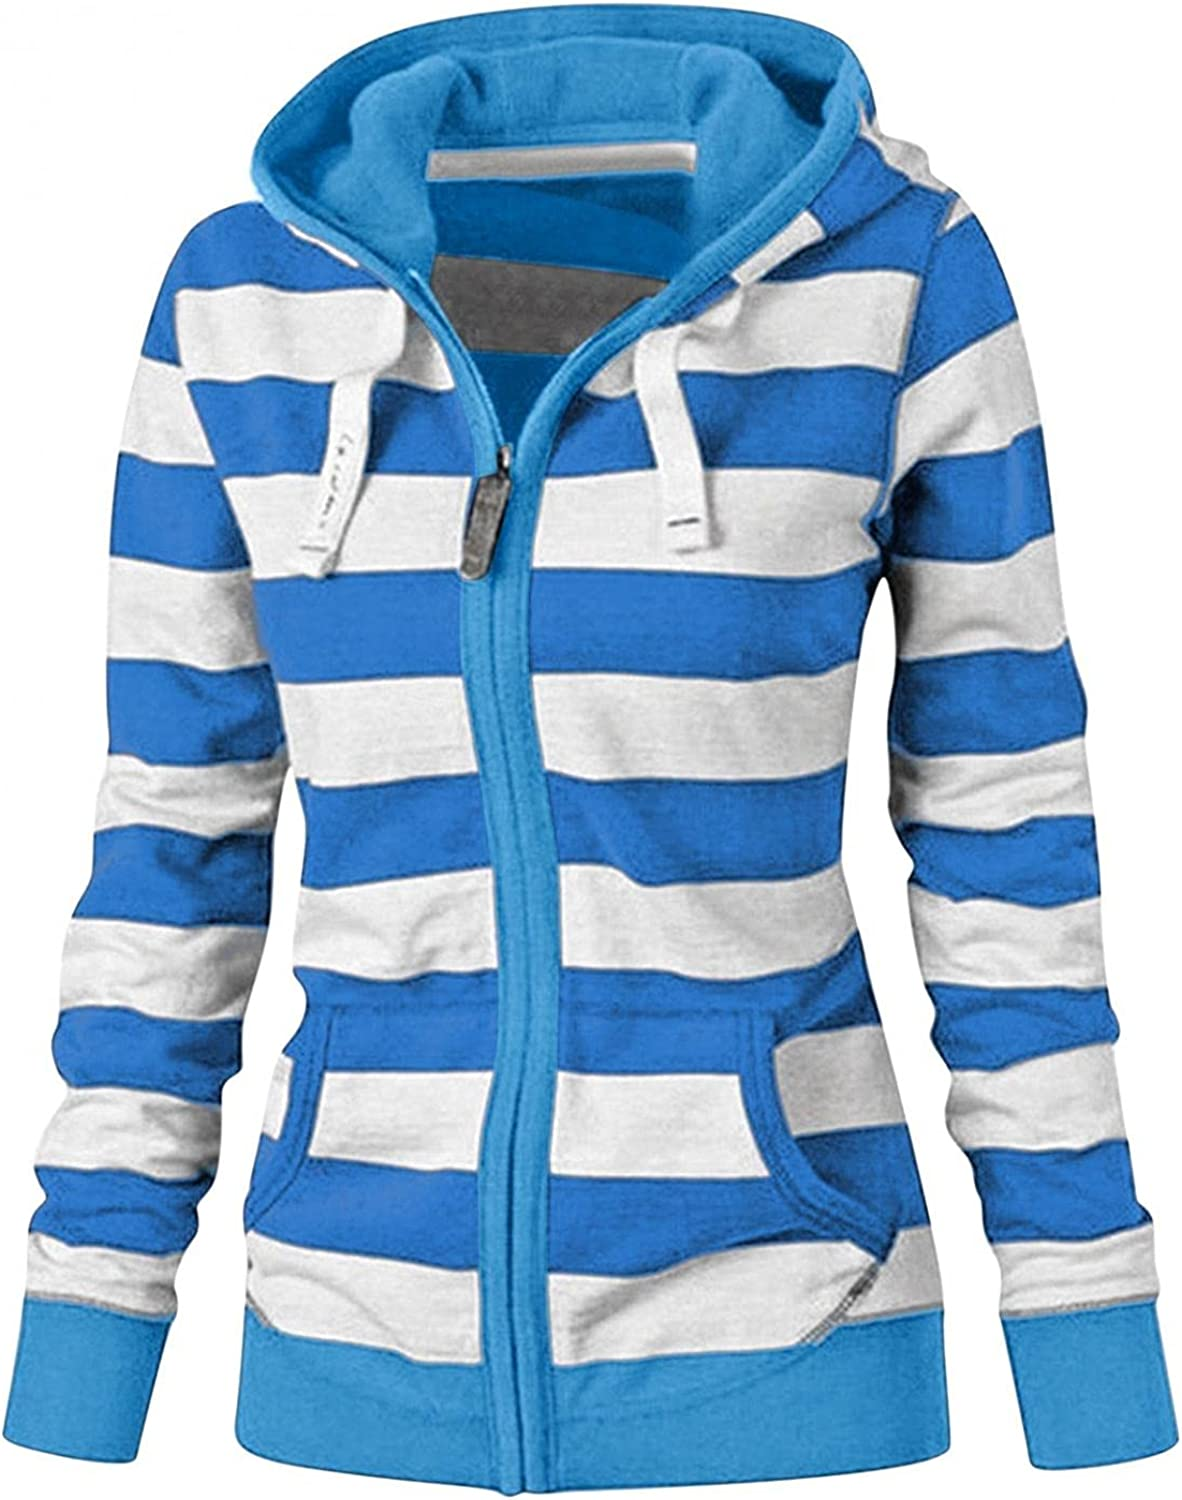 FABIURT Hoodies for Women, Womens Zip Up Hoodie Long Sleeve Striped Lightweight Pullover Tops Casual Blouses with Pockets